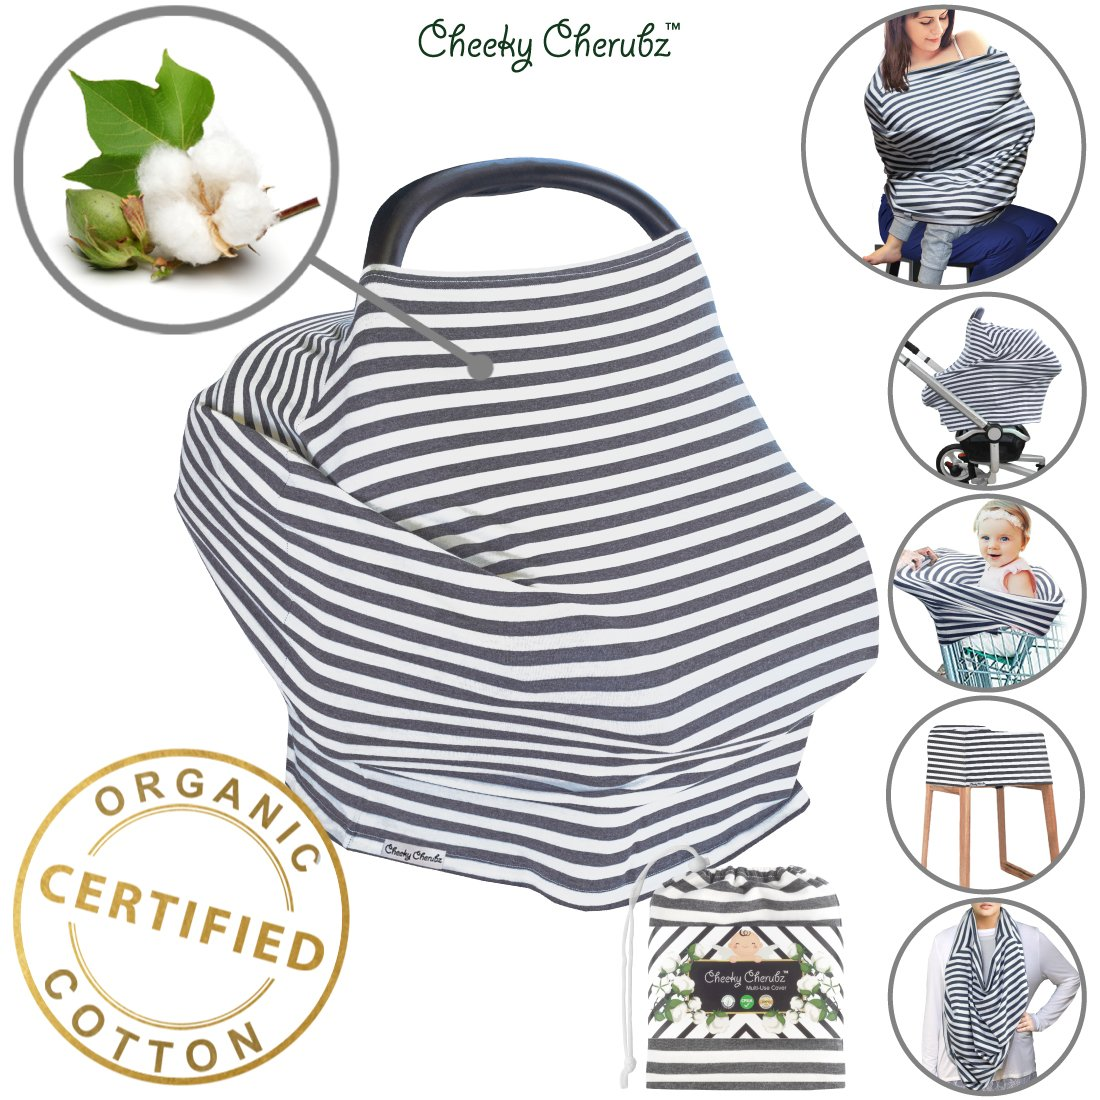 ☆ Organic Cotton ☆ Nursing Breastfeeding Cover Scarf, Baby Car Seat Canopy, Canopies, Shopping Cart, Stroller, Carseat Covers for Girls and Boys Best Multi-Use Infinity Stretchy Shawl Shower Gifts Cheeky Cherubz